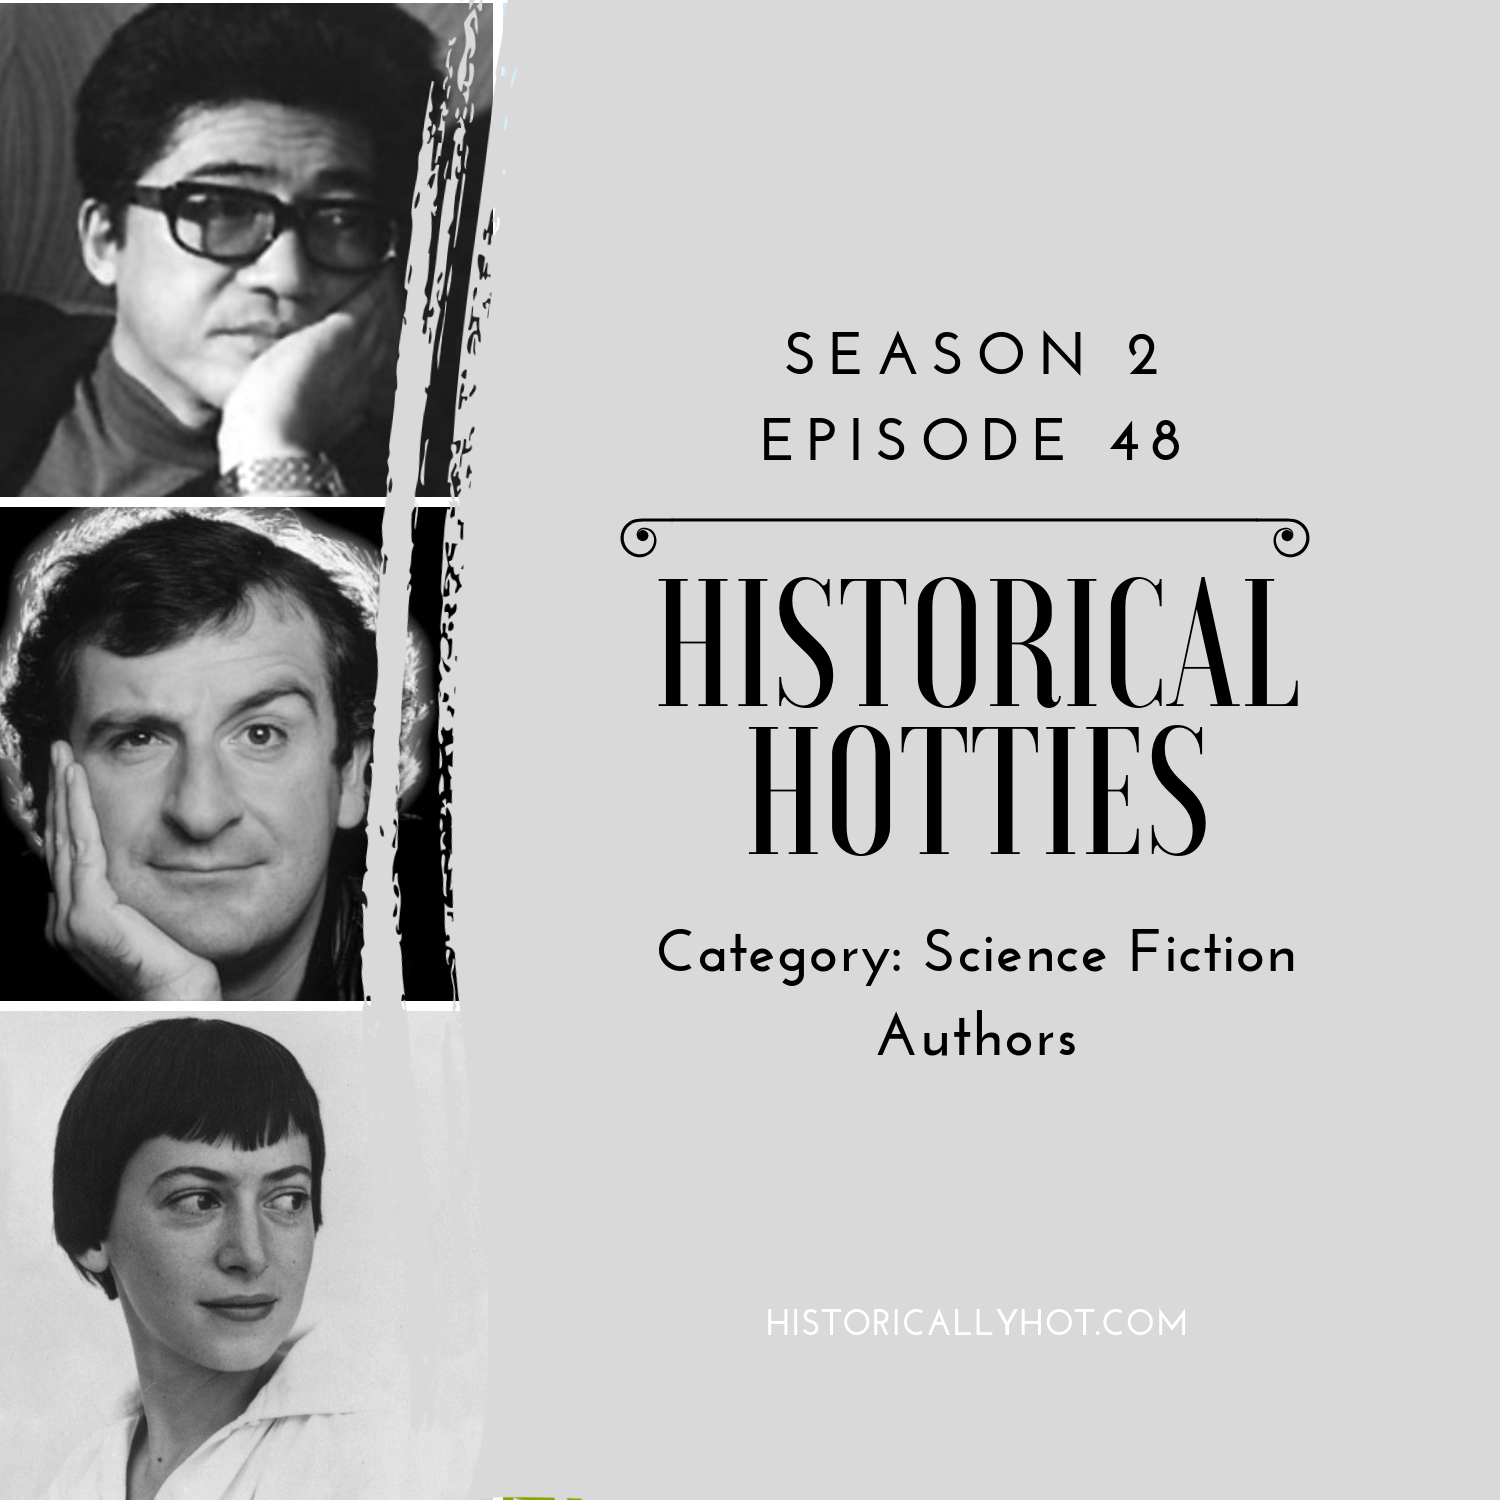 historical hotties sci fi authors